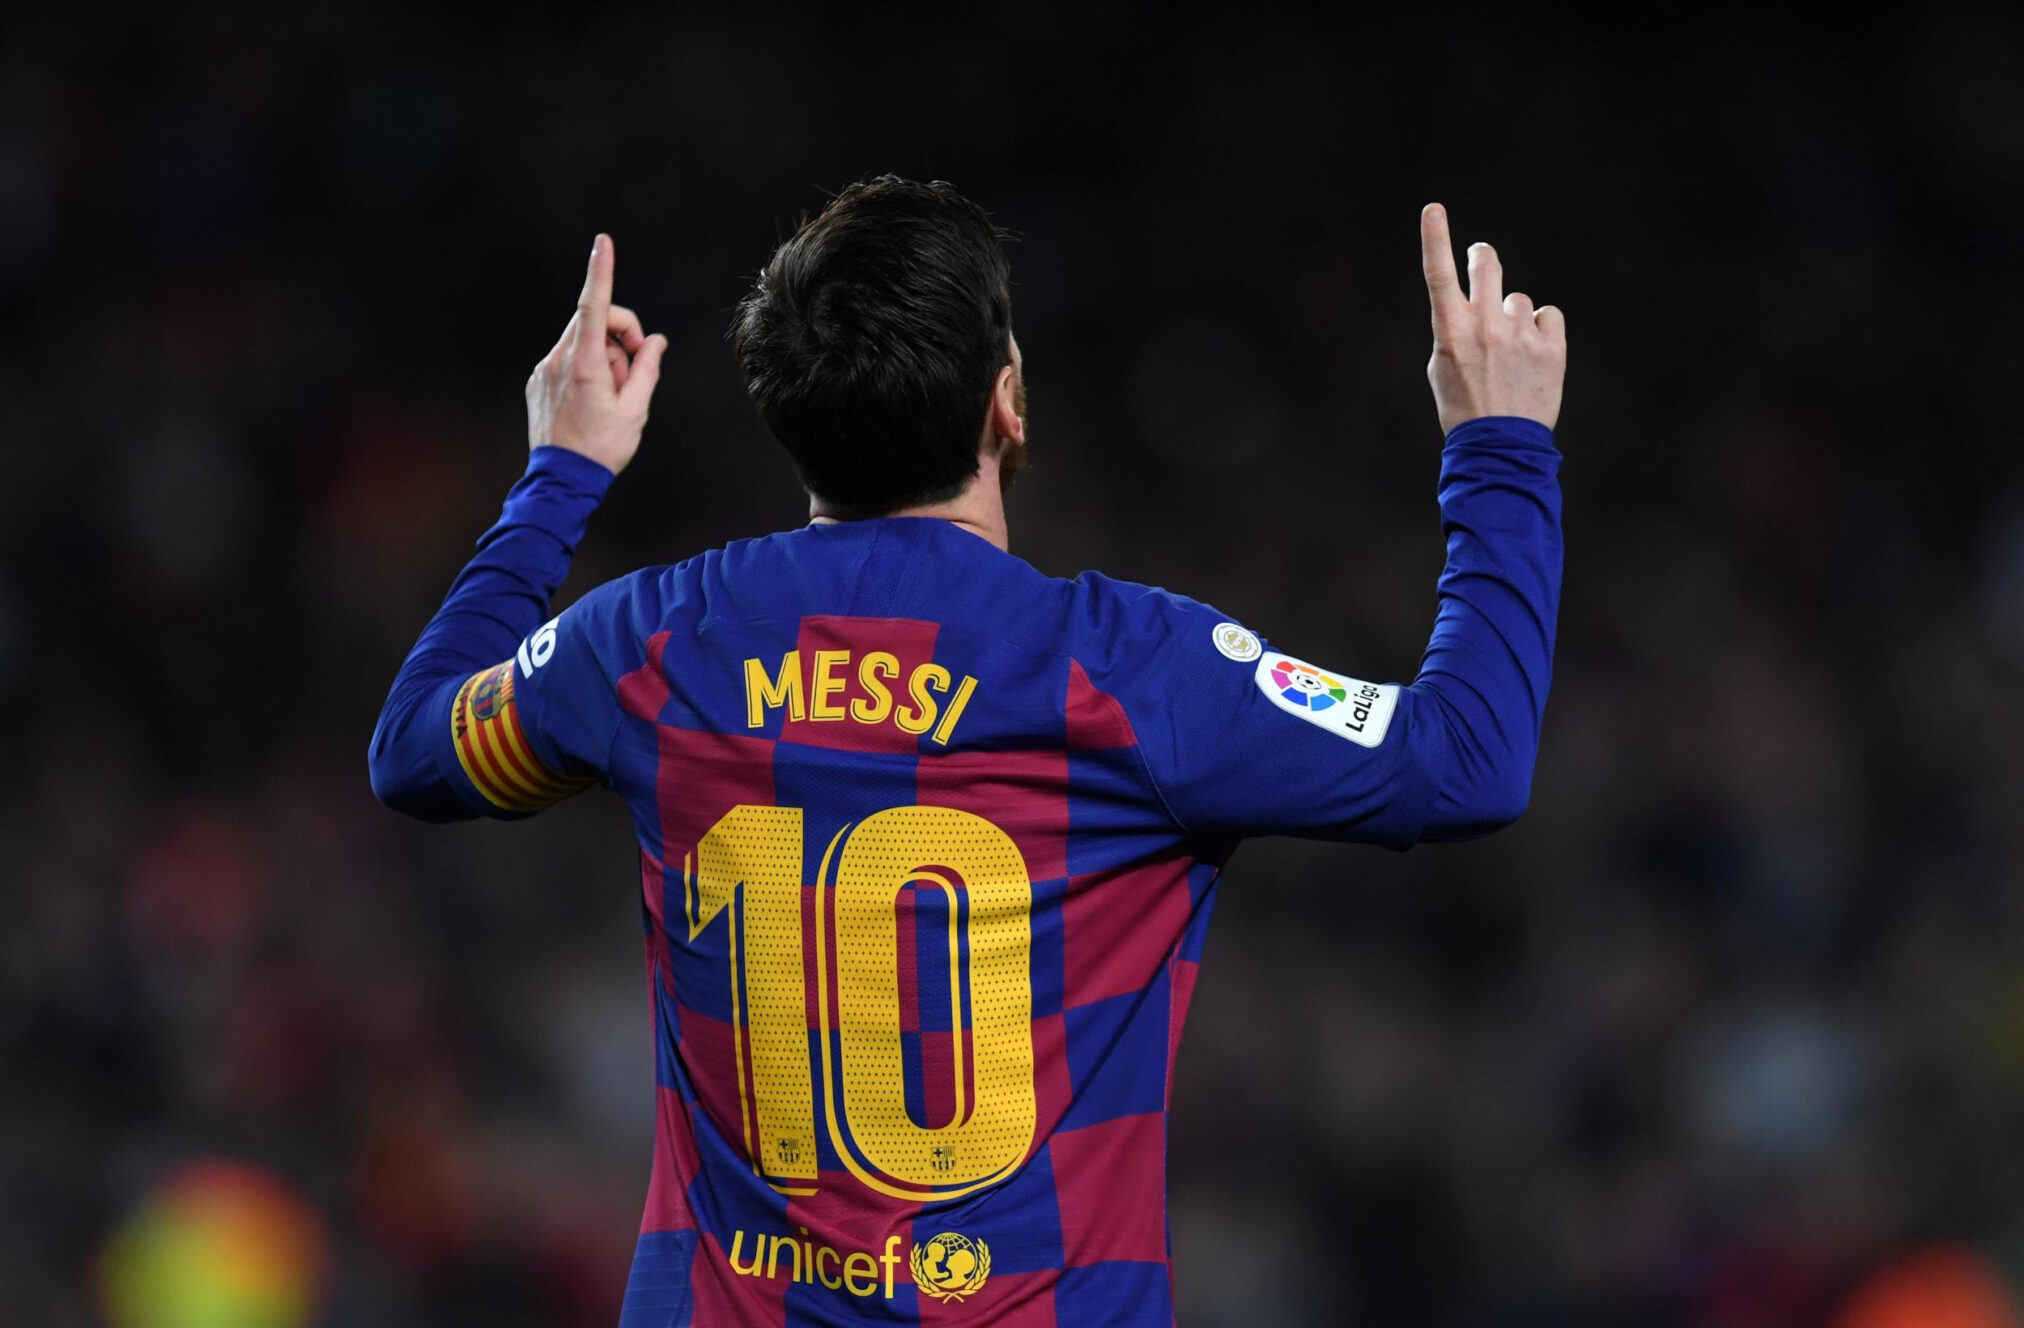 Lionel Messi Is Leaving Barcelona, Confirms Club - The Wall Post